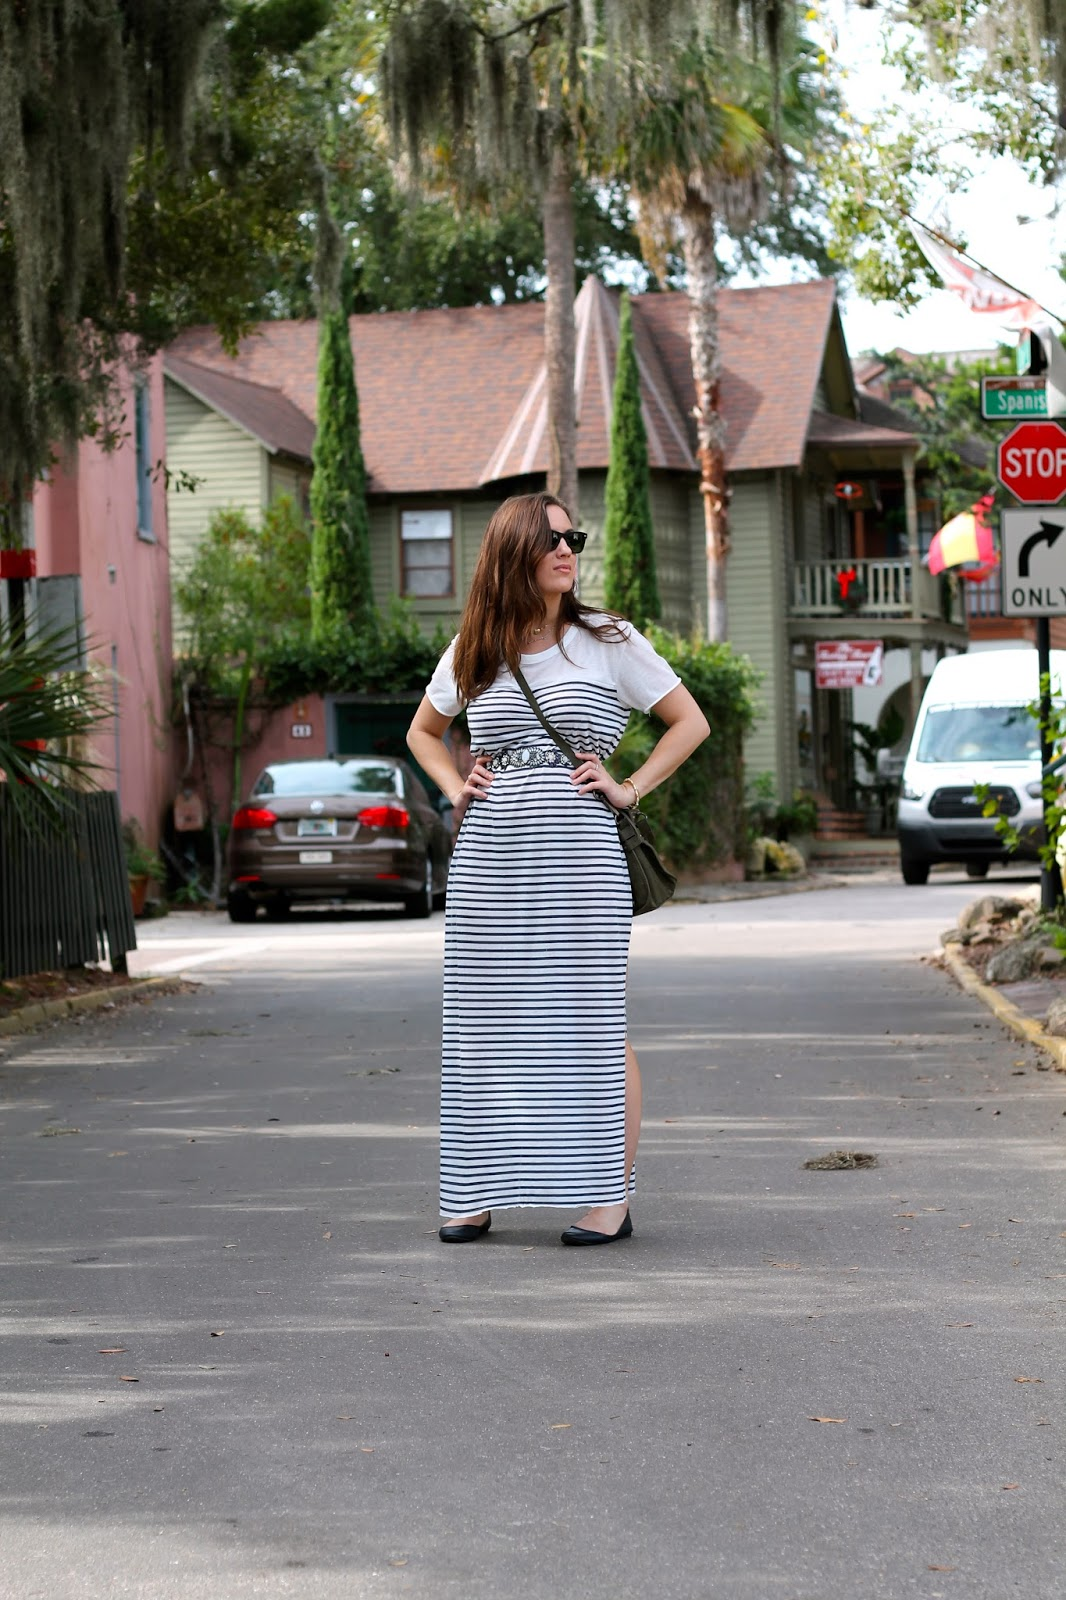 urban outfitters, target, Free People, Plum Flower Creations, Anthropologie, Ray-Ban, style blog, fashion blog, fashion blogger, Miami fashion blogger, outfit ideas, classic outfits, what I wore, look book, style file